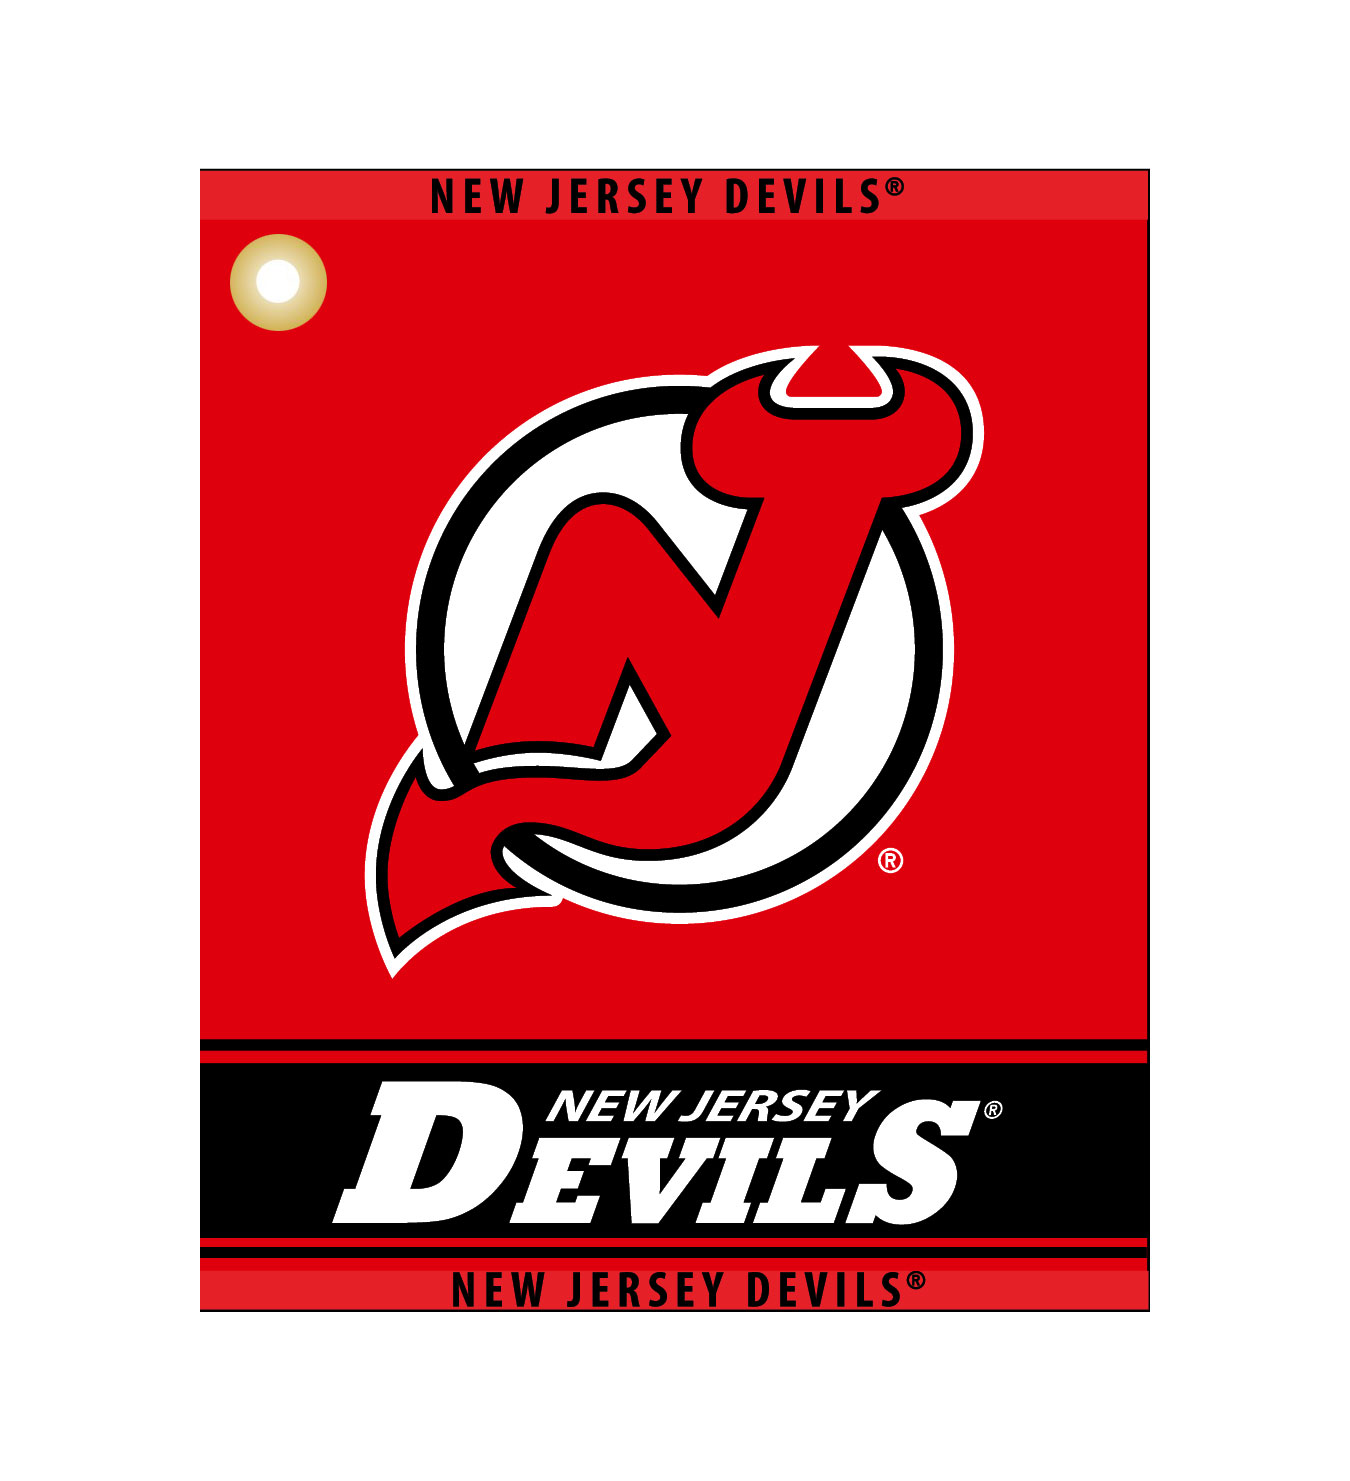 reputable site a8c24 e9a03 New Jersey Devils Woven Towel